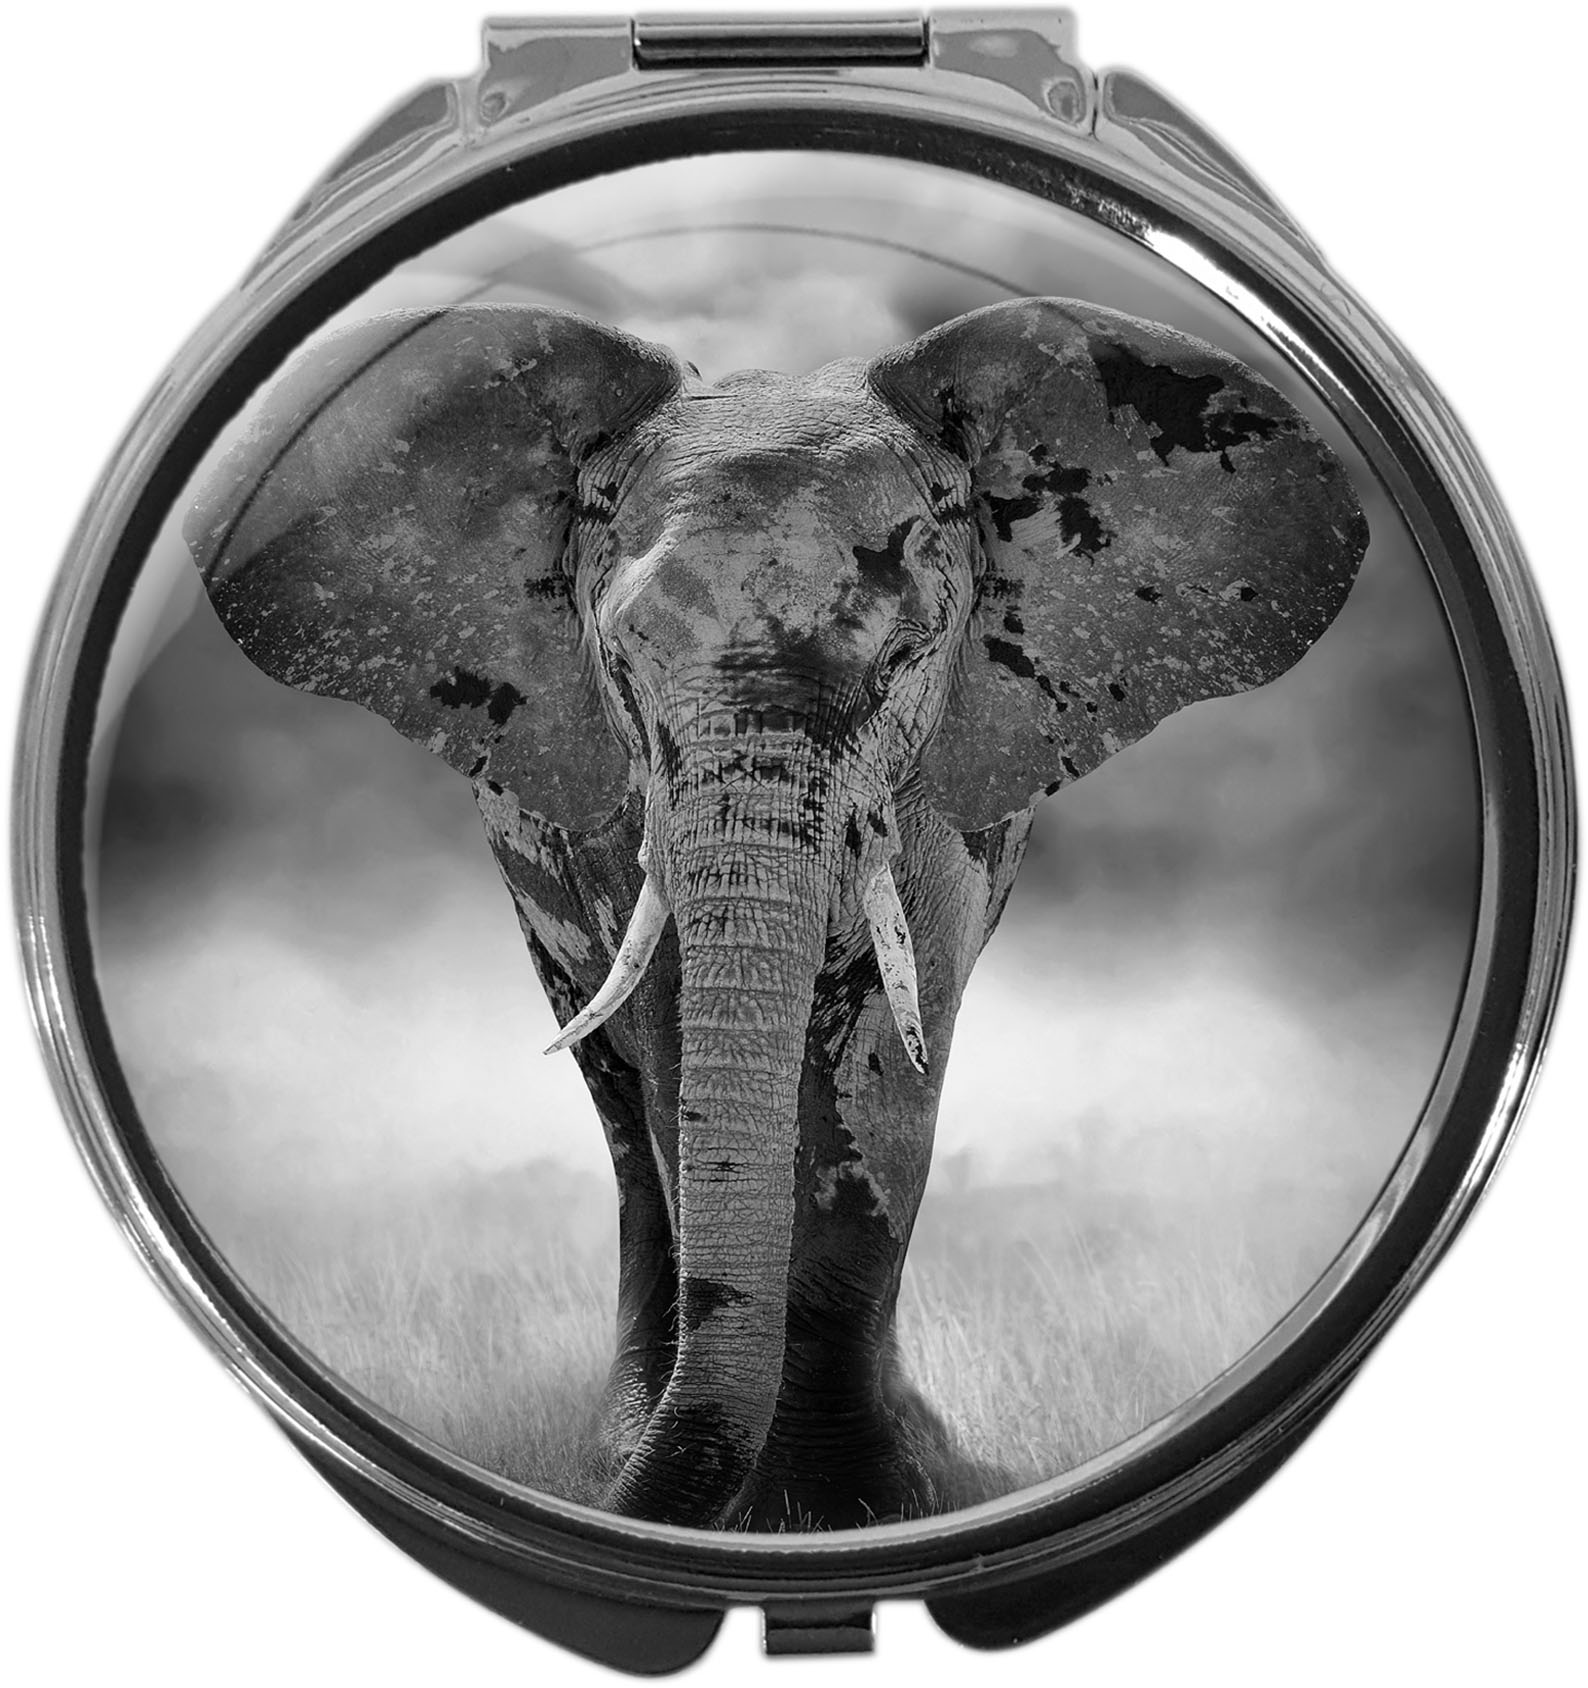 Pillendose / Elefant / Wildtiere